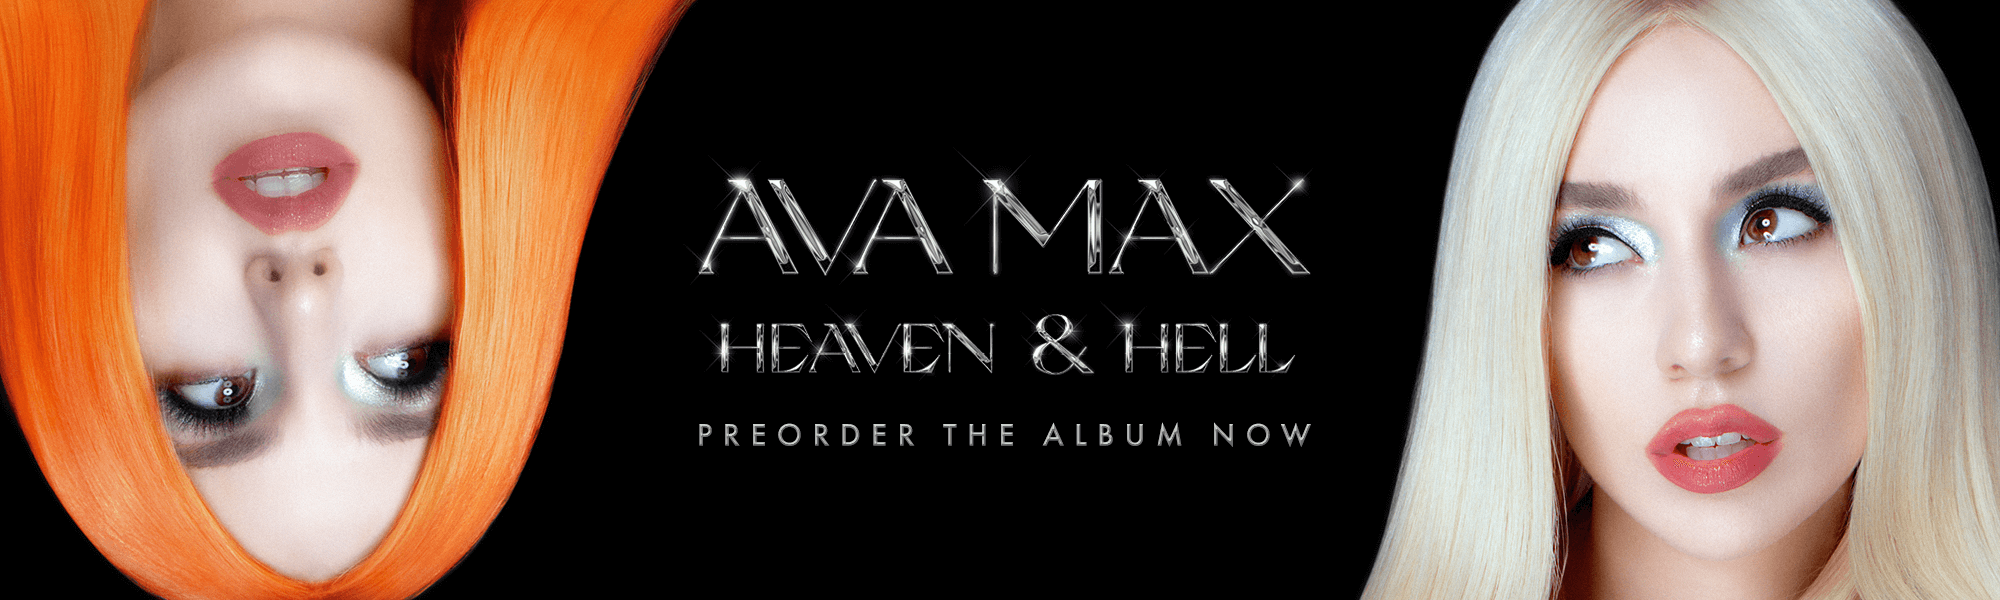 Ava Max - Heaven and Hell, preorder the album now